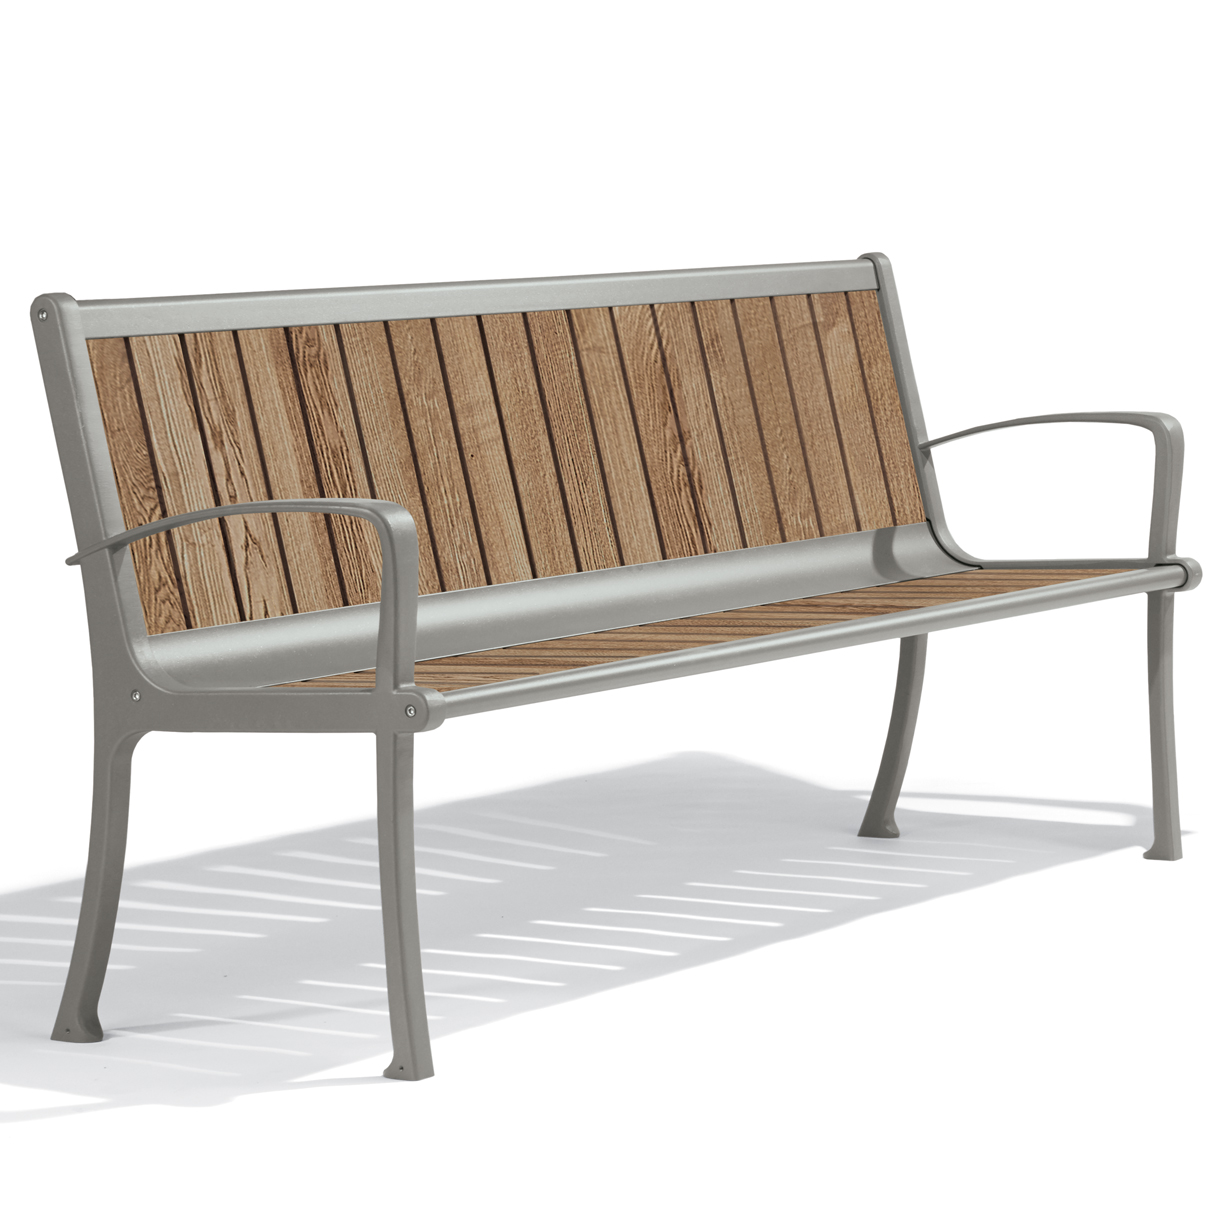 Coronoda Collection 6' Thermory Slat Contour Bench